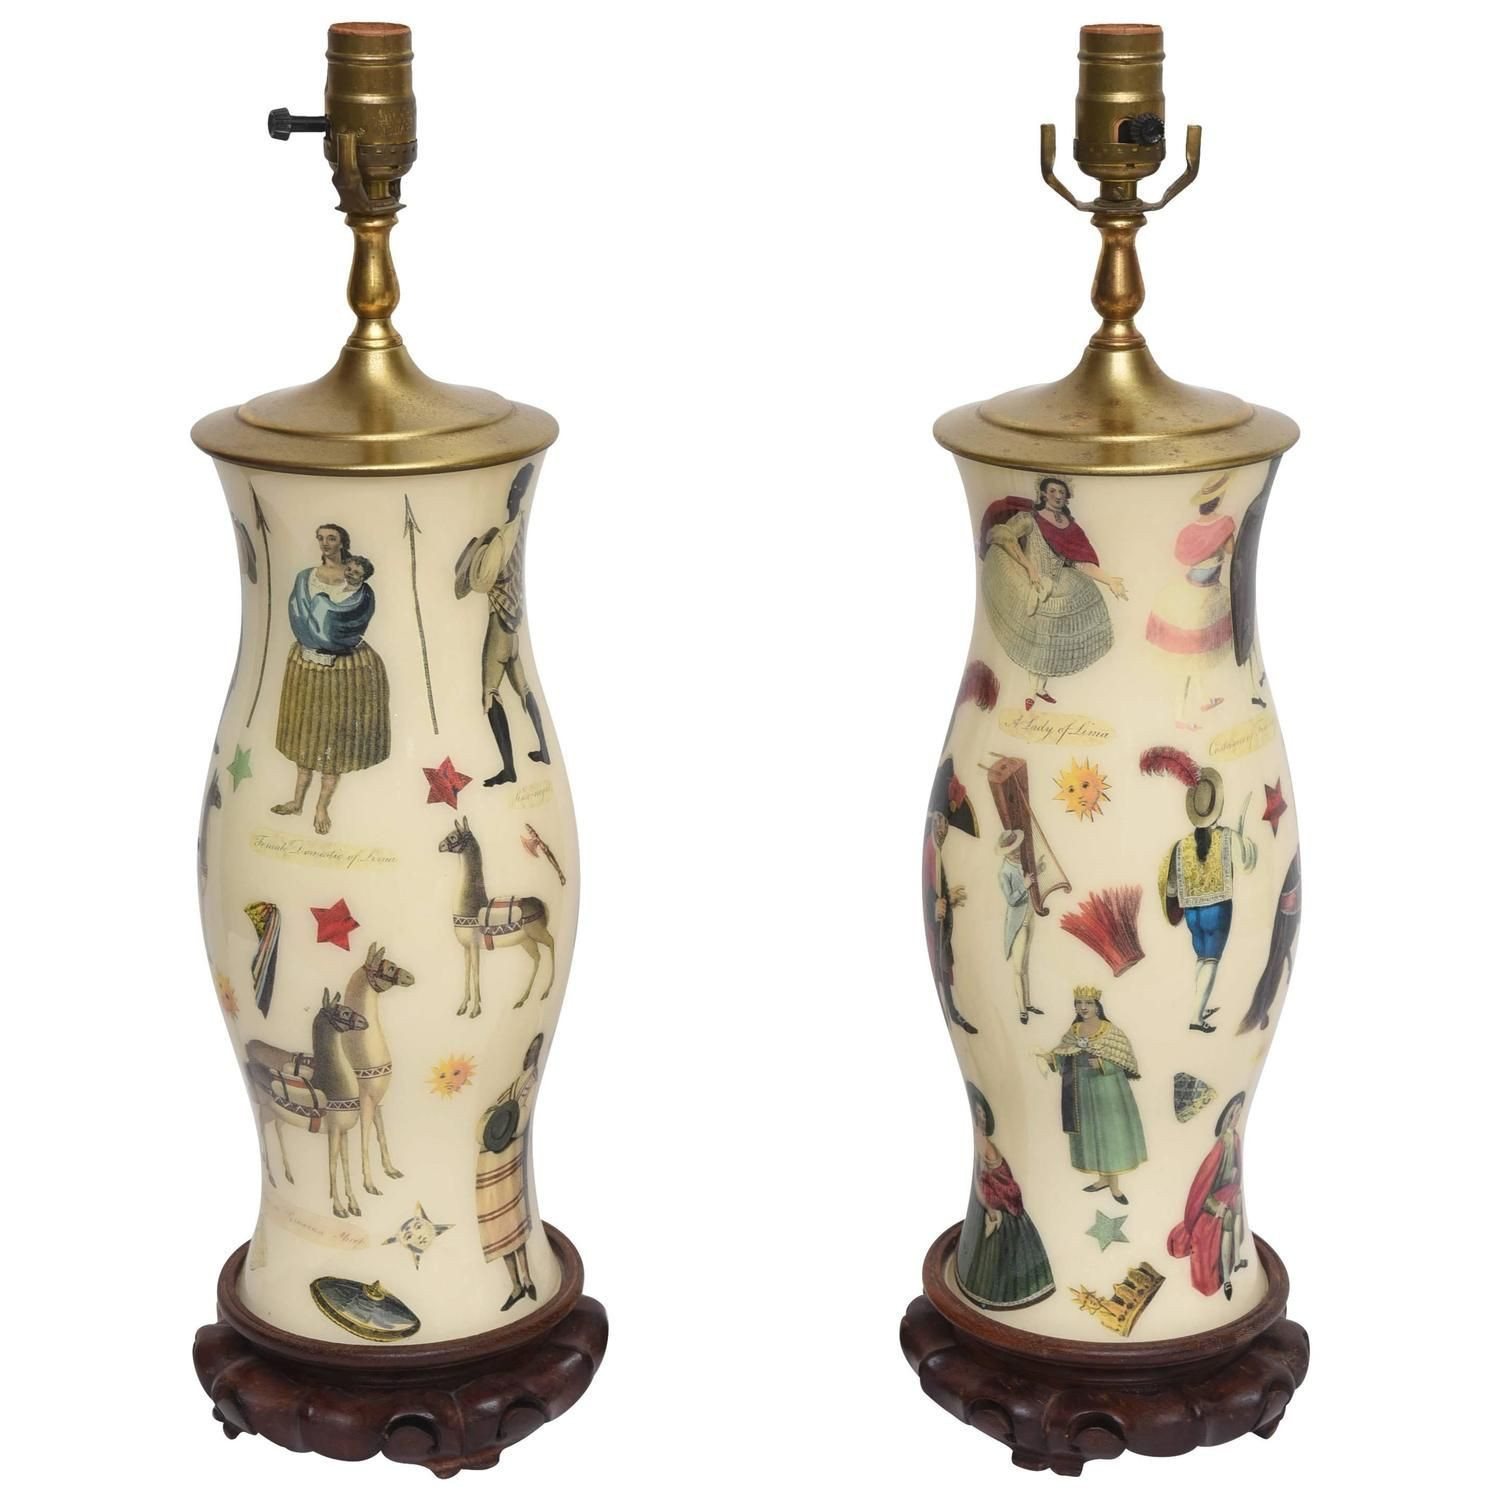 Chinese Vase Lamp Of Vase with Lid Gallery Chinese Ginger Jar Table Lamps New Vases Intended for Chinese Ginger Jar Table Lamps New Vases Chinese Vase with Lid